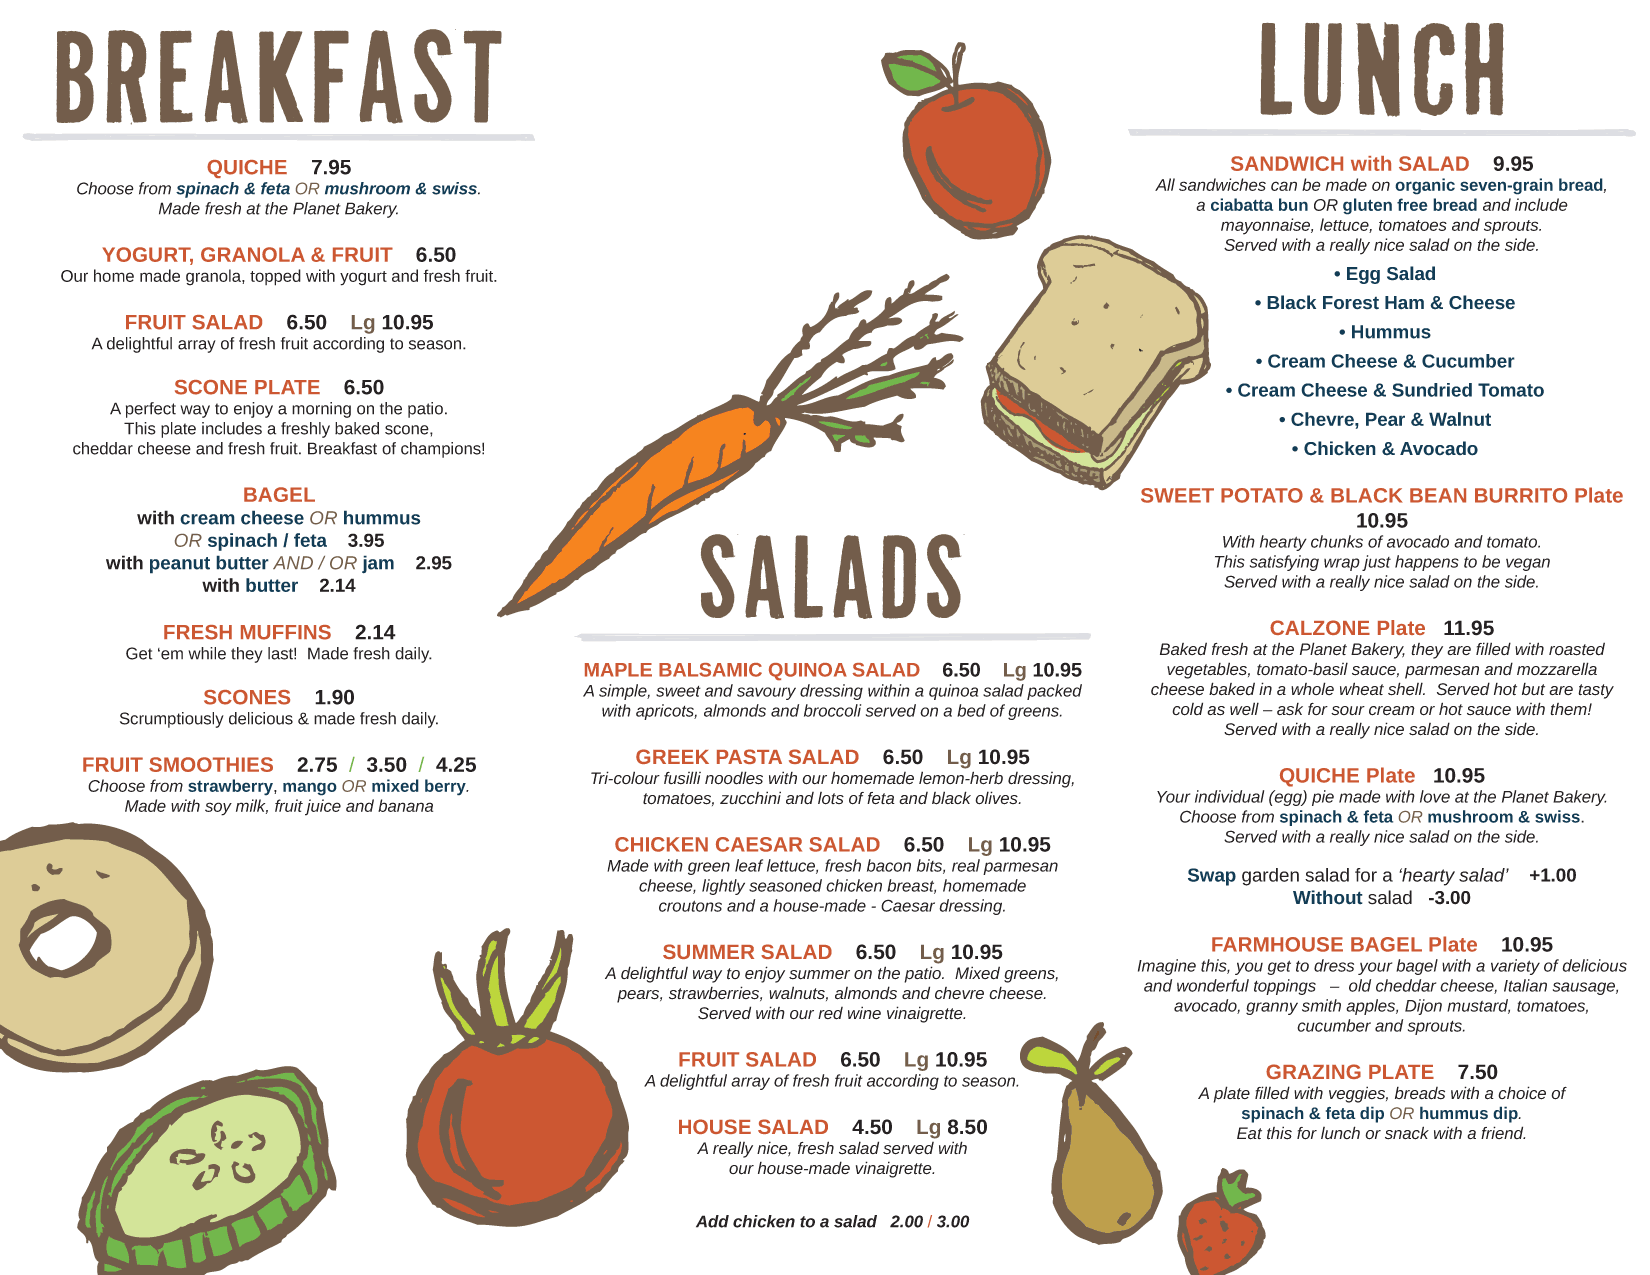 Real Food Cafe Lunch Menu